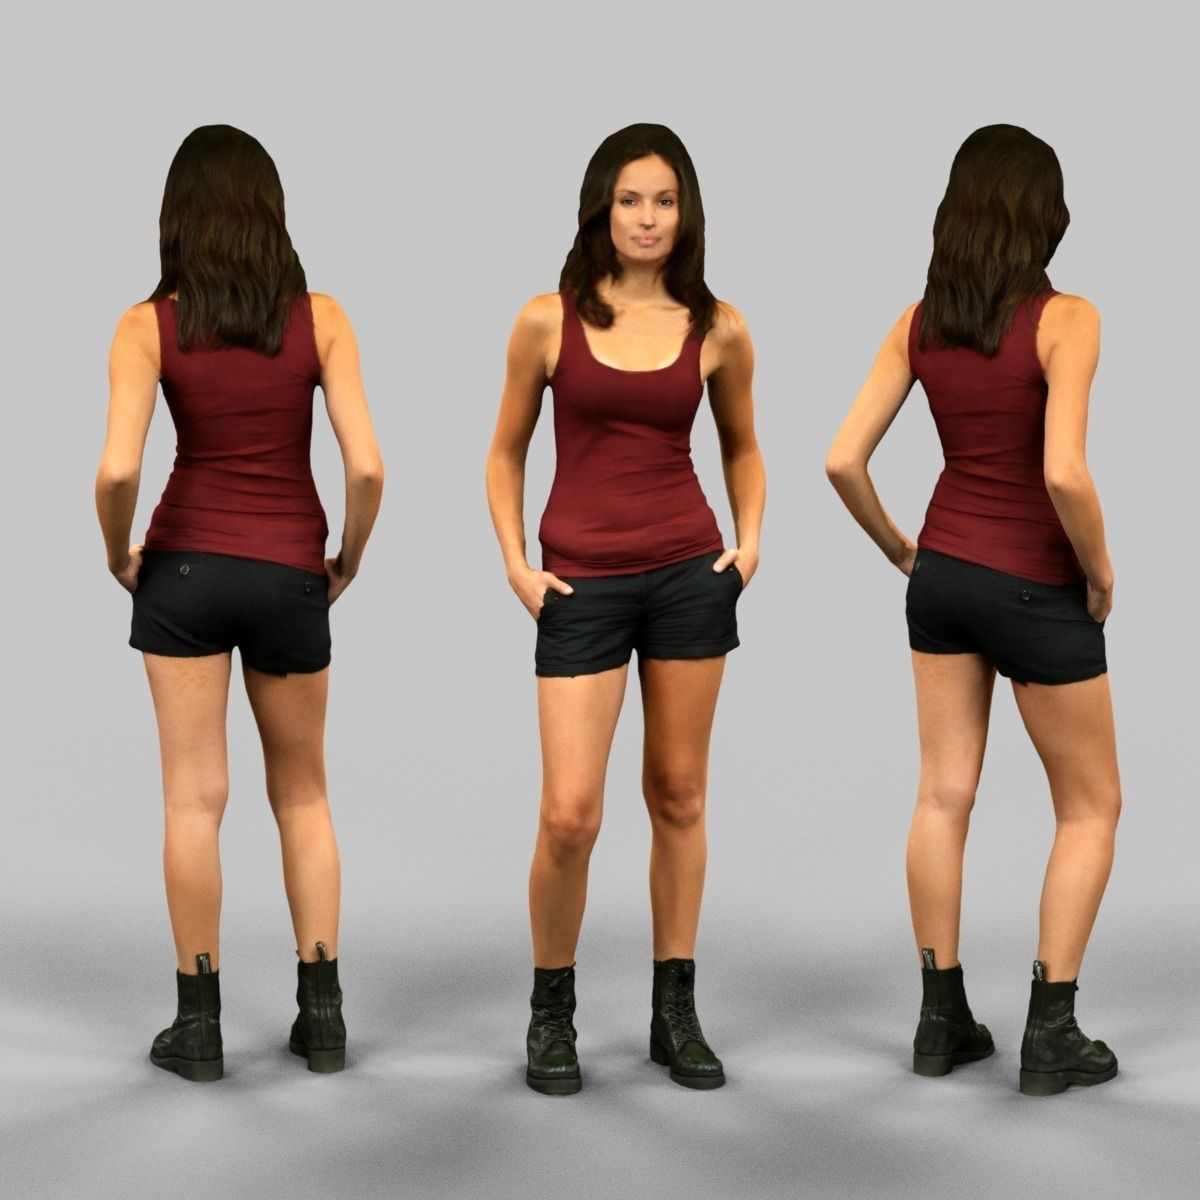 3D model Girl in red top and black shorts VR / AR / low-poly OBJ FBX